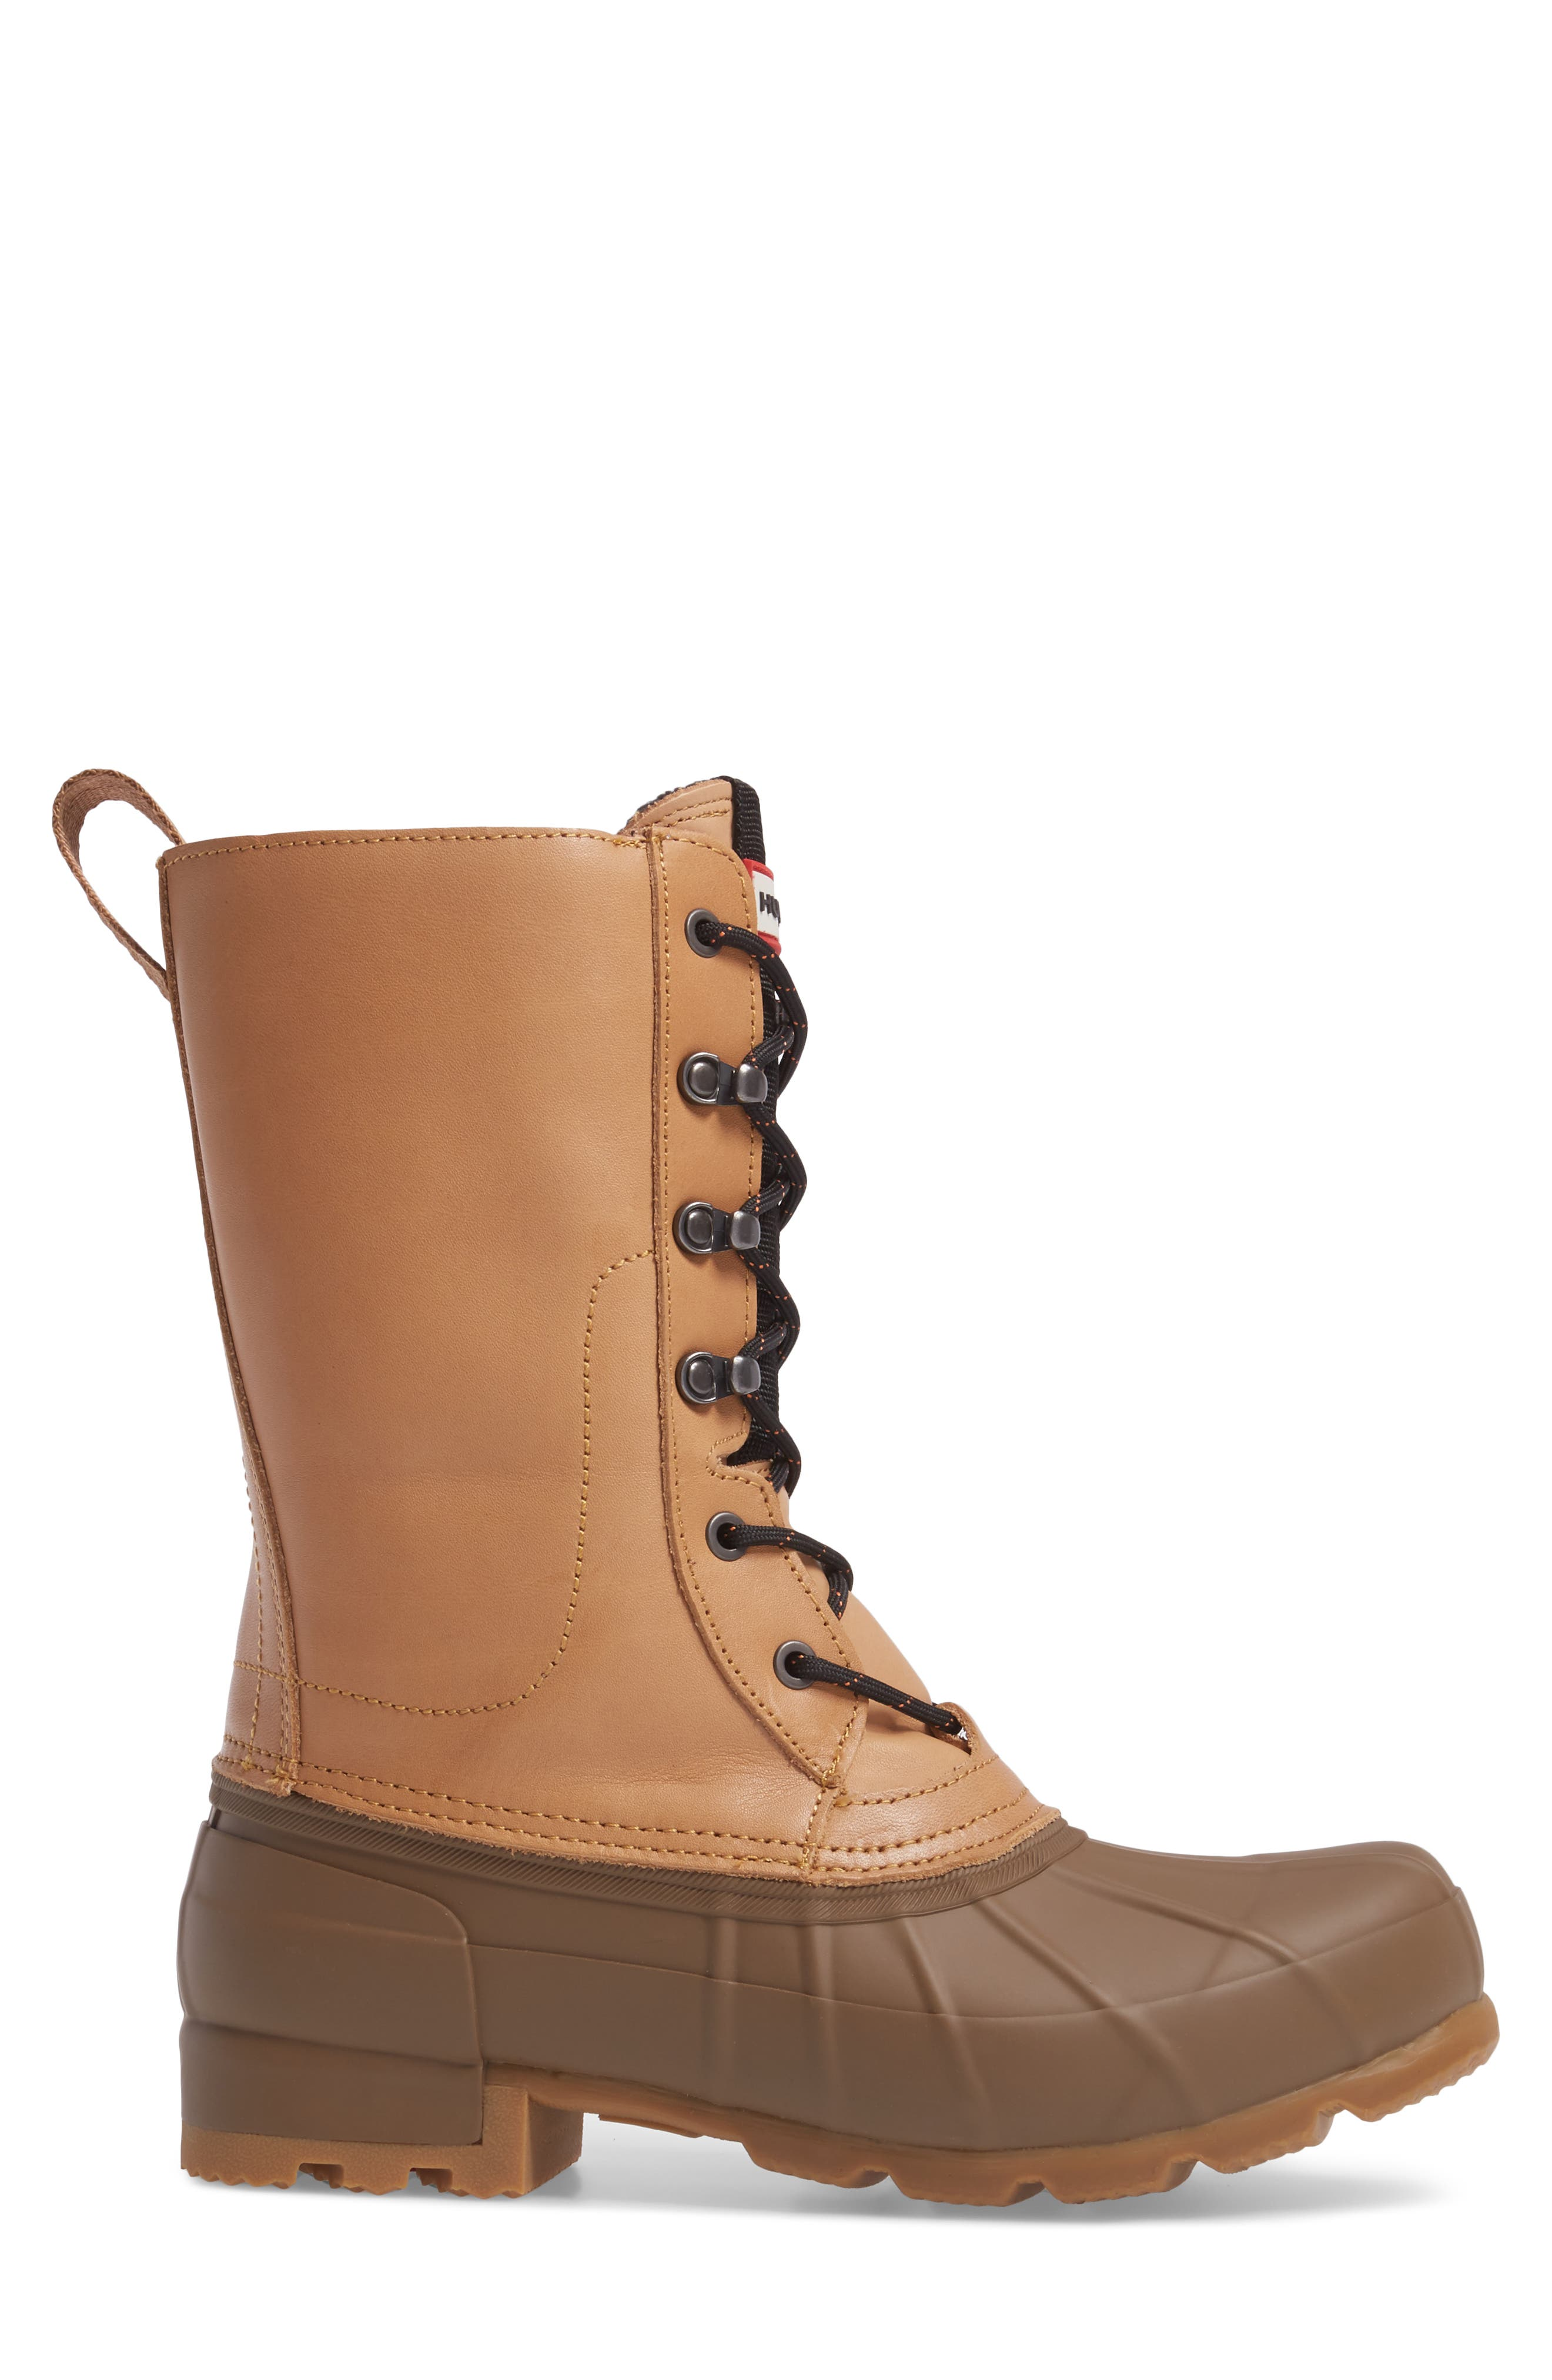 Original Pac Waterproof Boot,                             Alternate thumbnail 3, color,                             PLUTO / LIGHT KHAKI BROWN